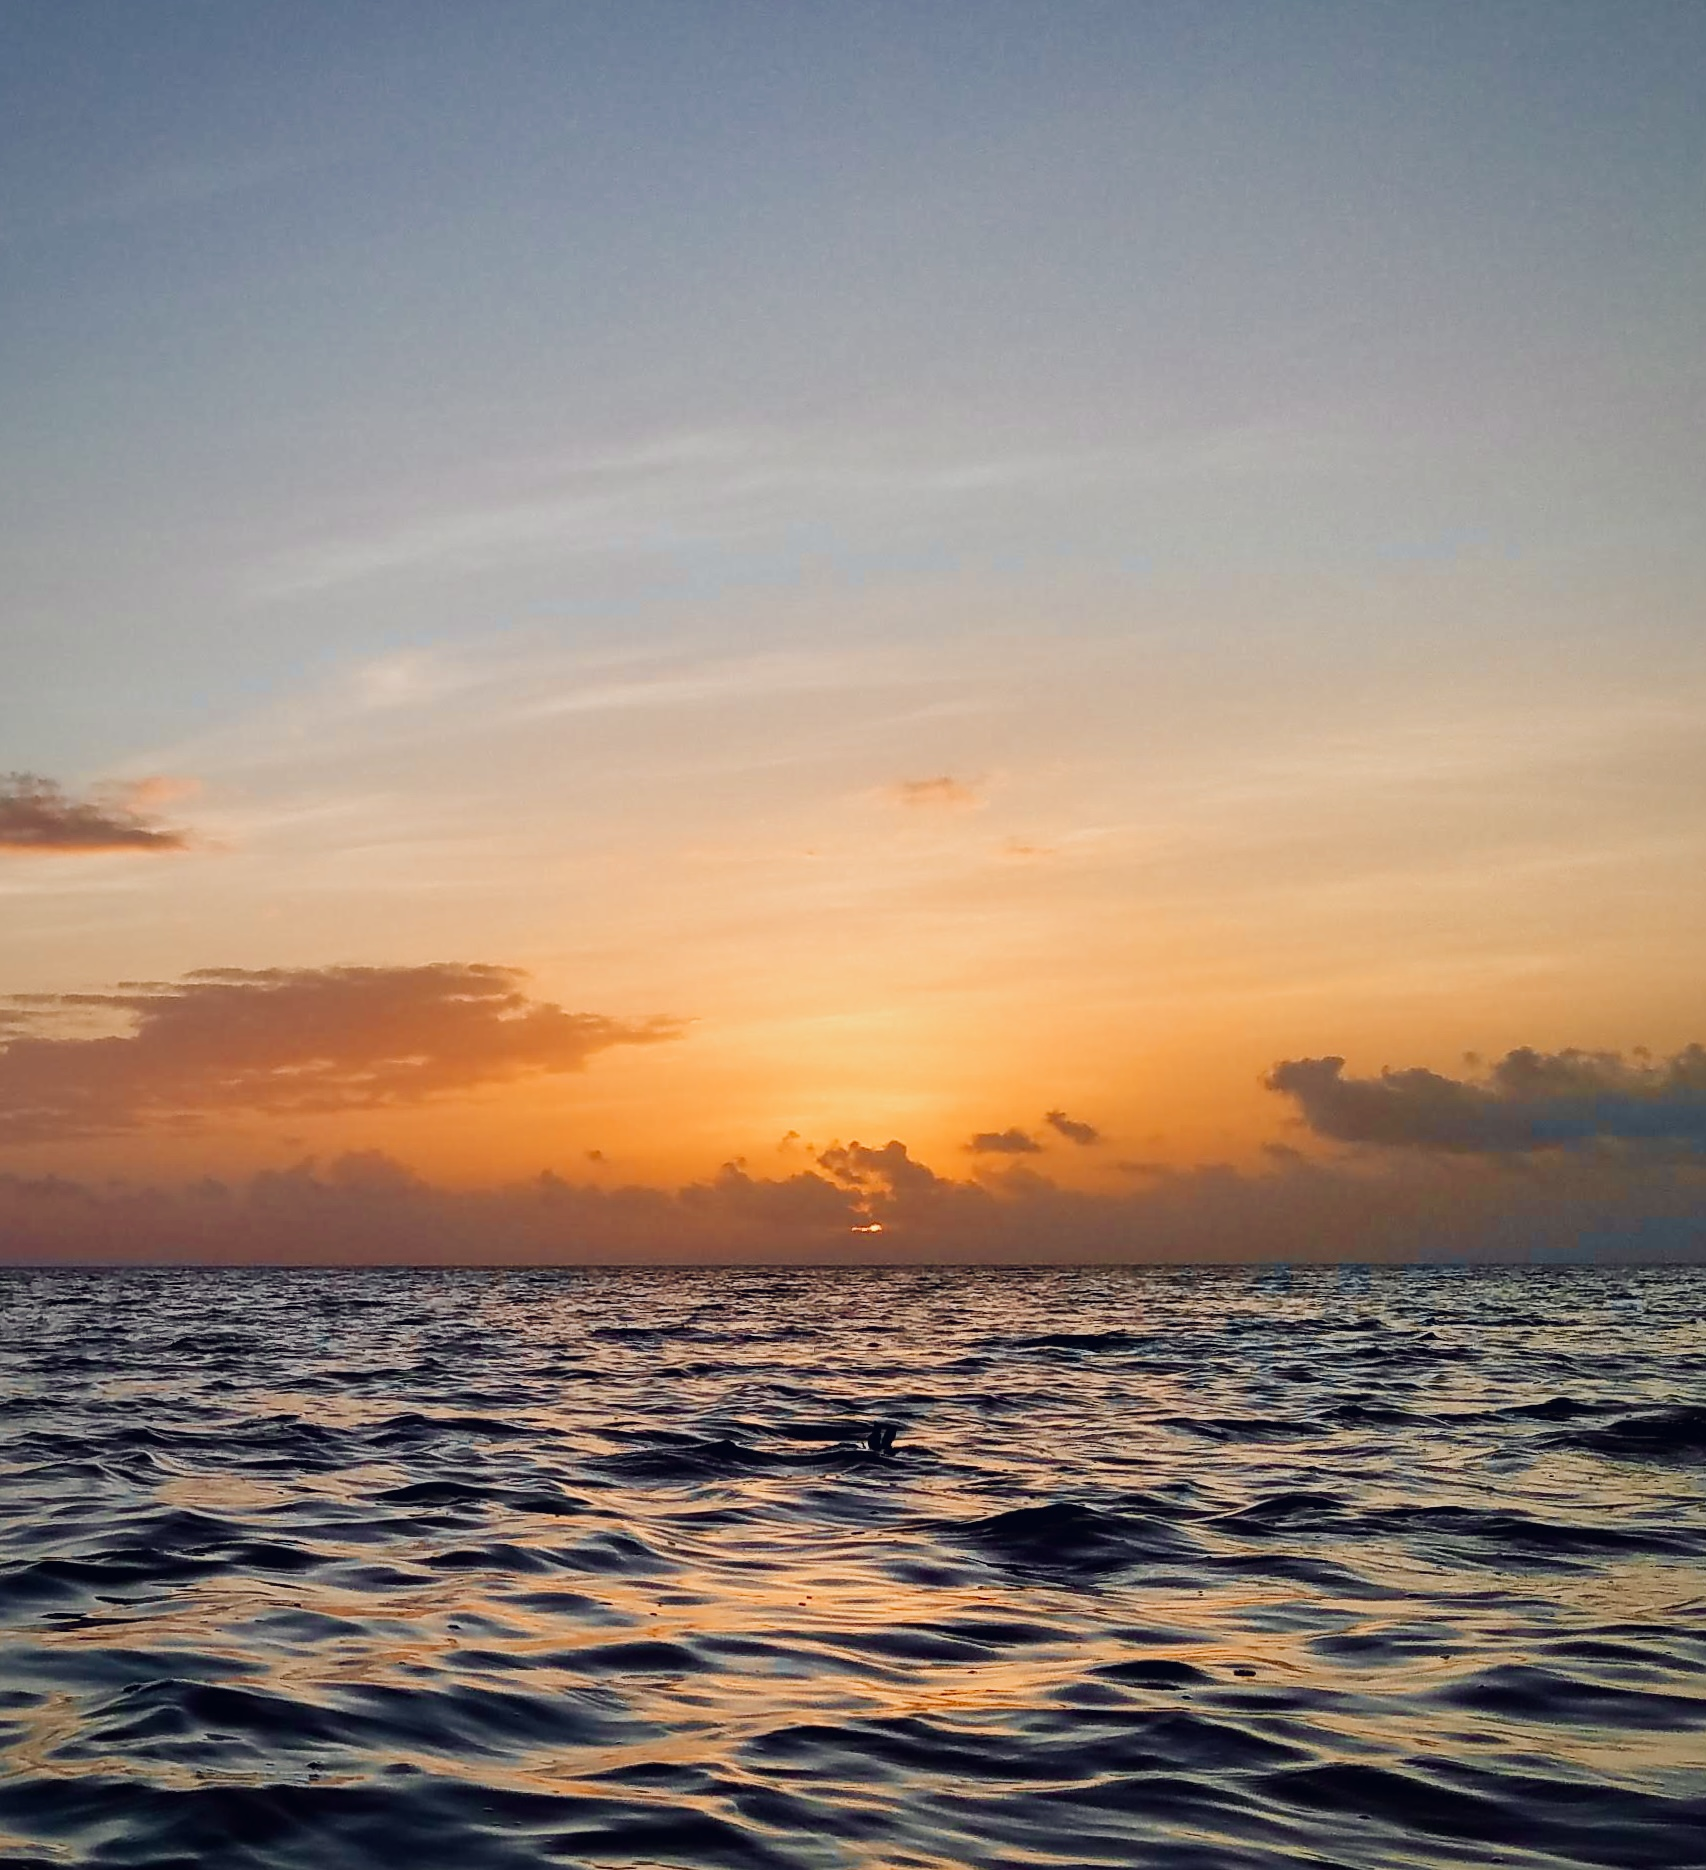 Tokyo ON #072: A New Day: Sunrise from Canoe on Iriomote Island